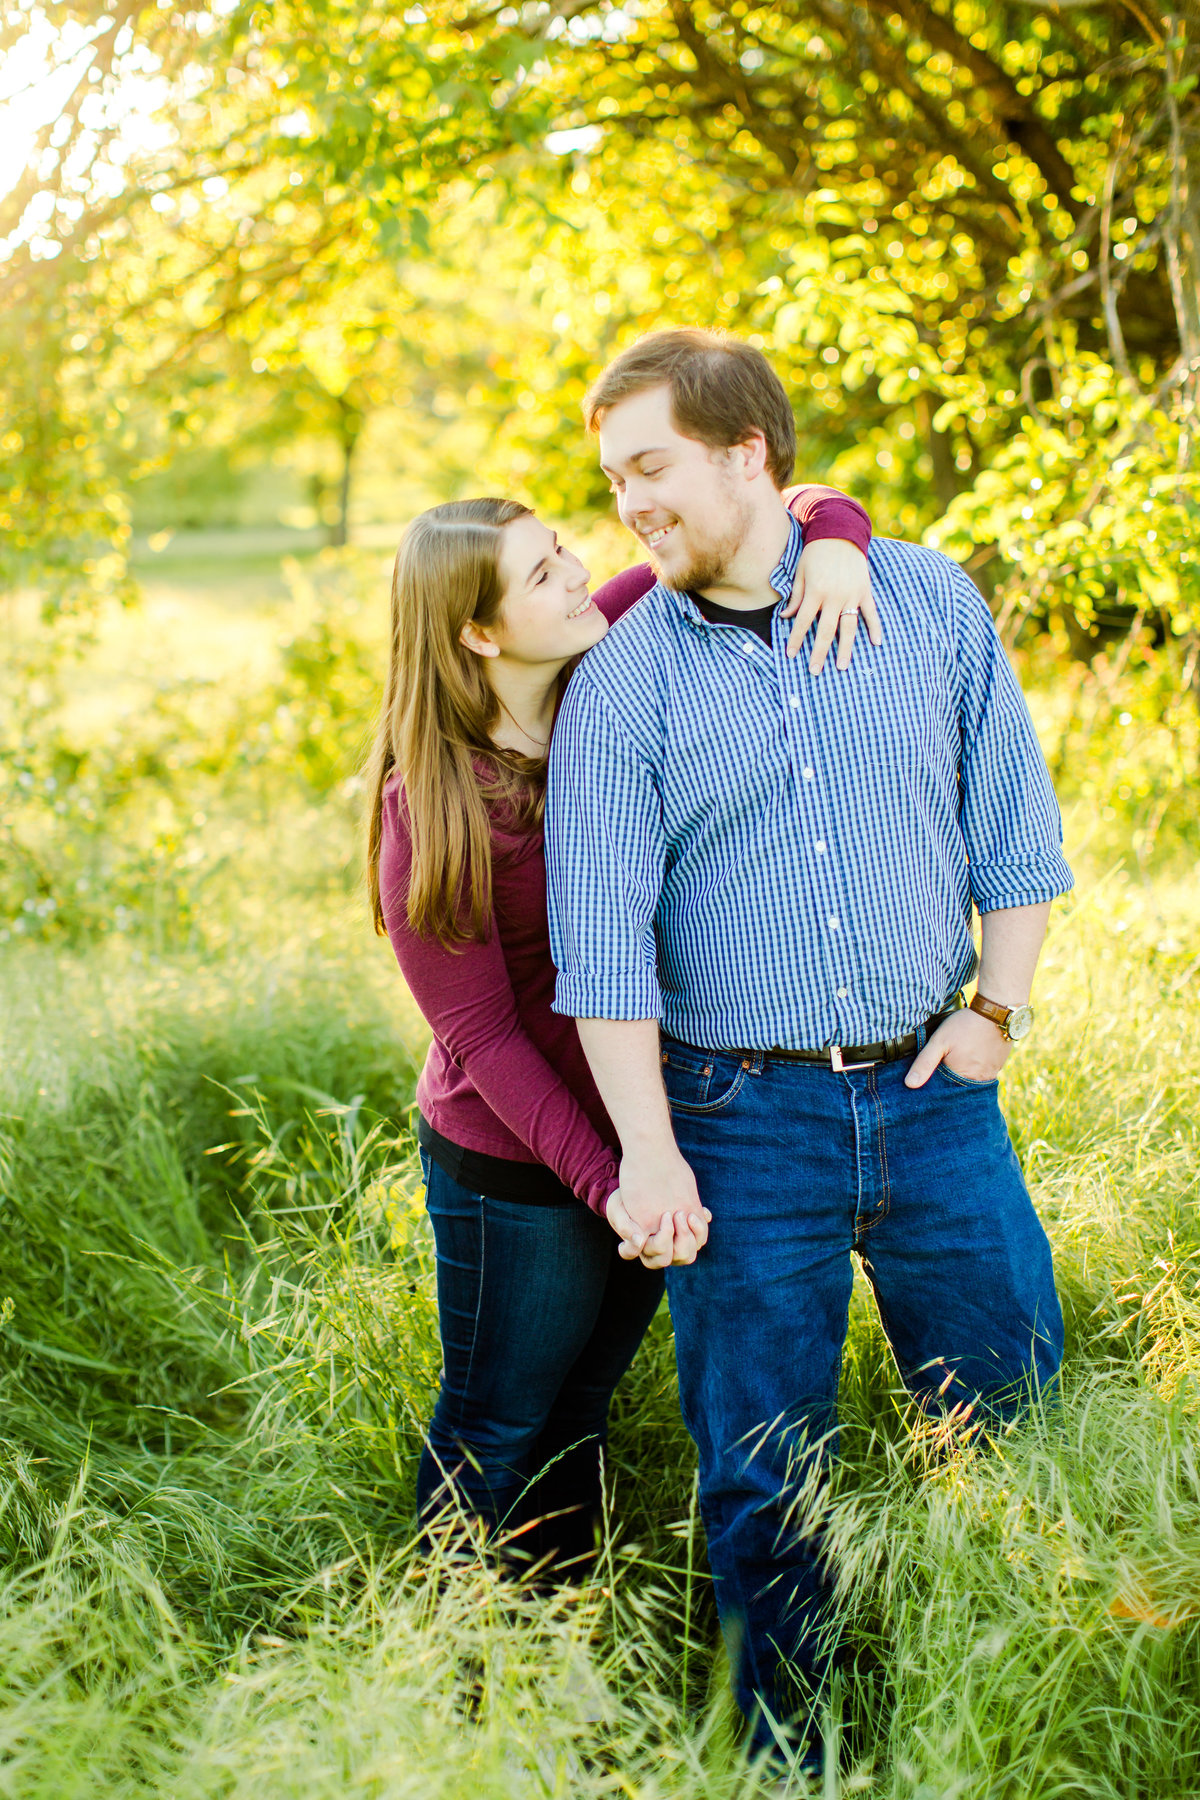 engagement-session-at-whitehall-manor-in-bluemont-virginia-emily-sacra-photography-43